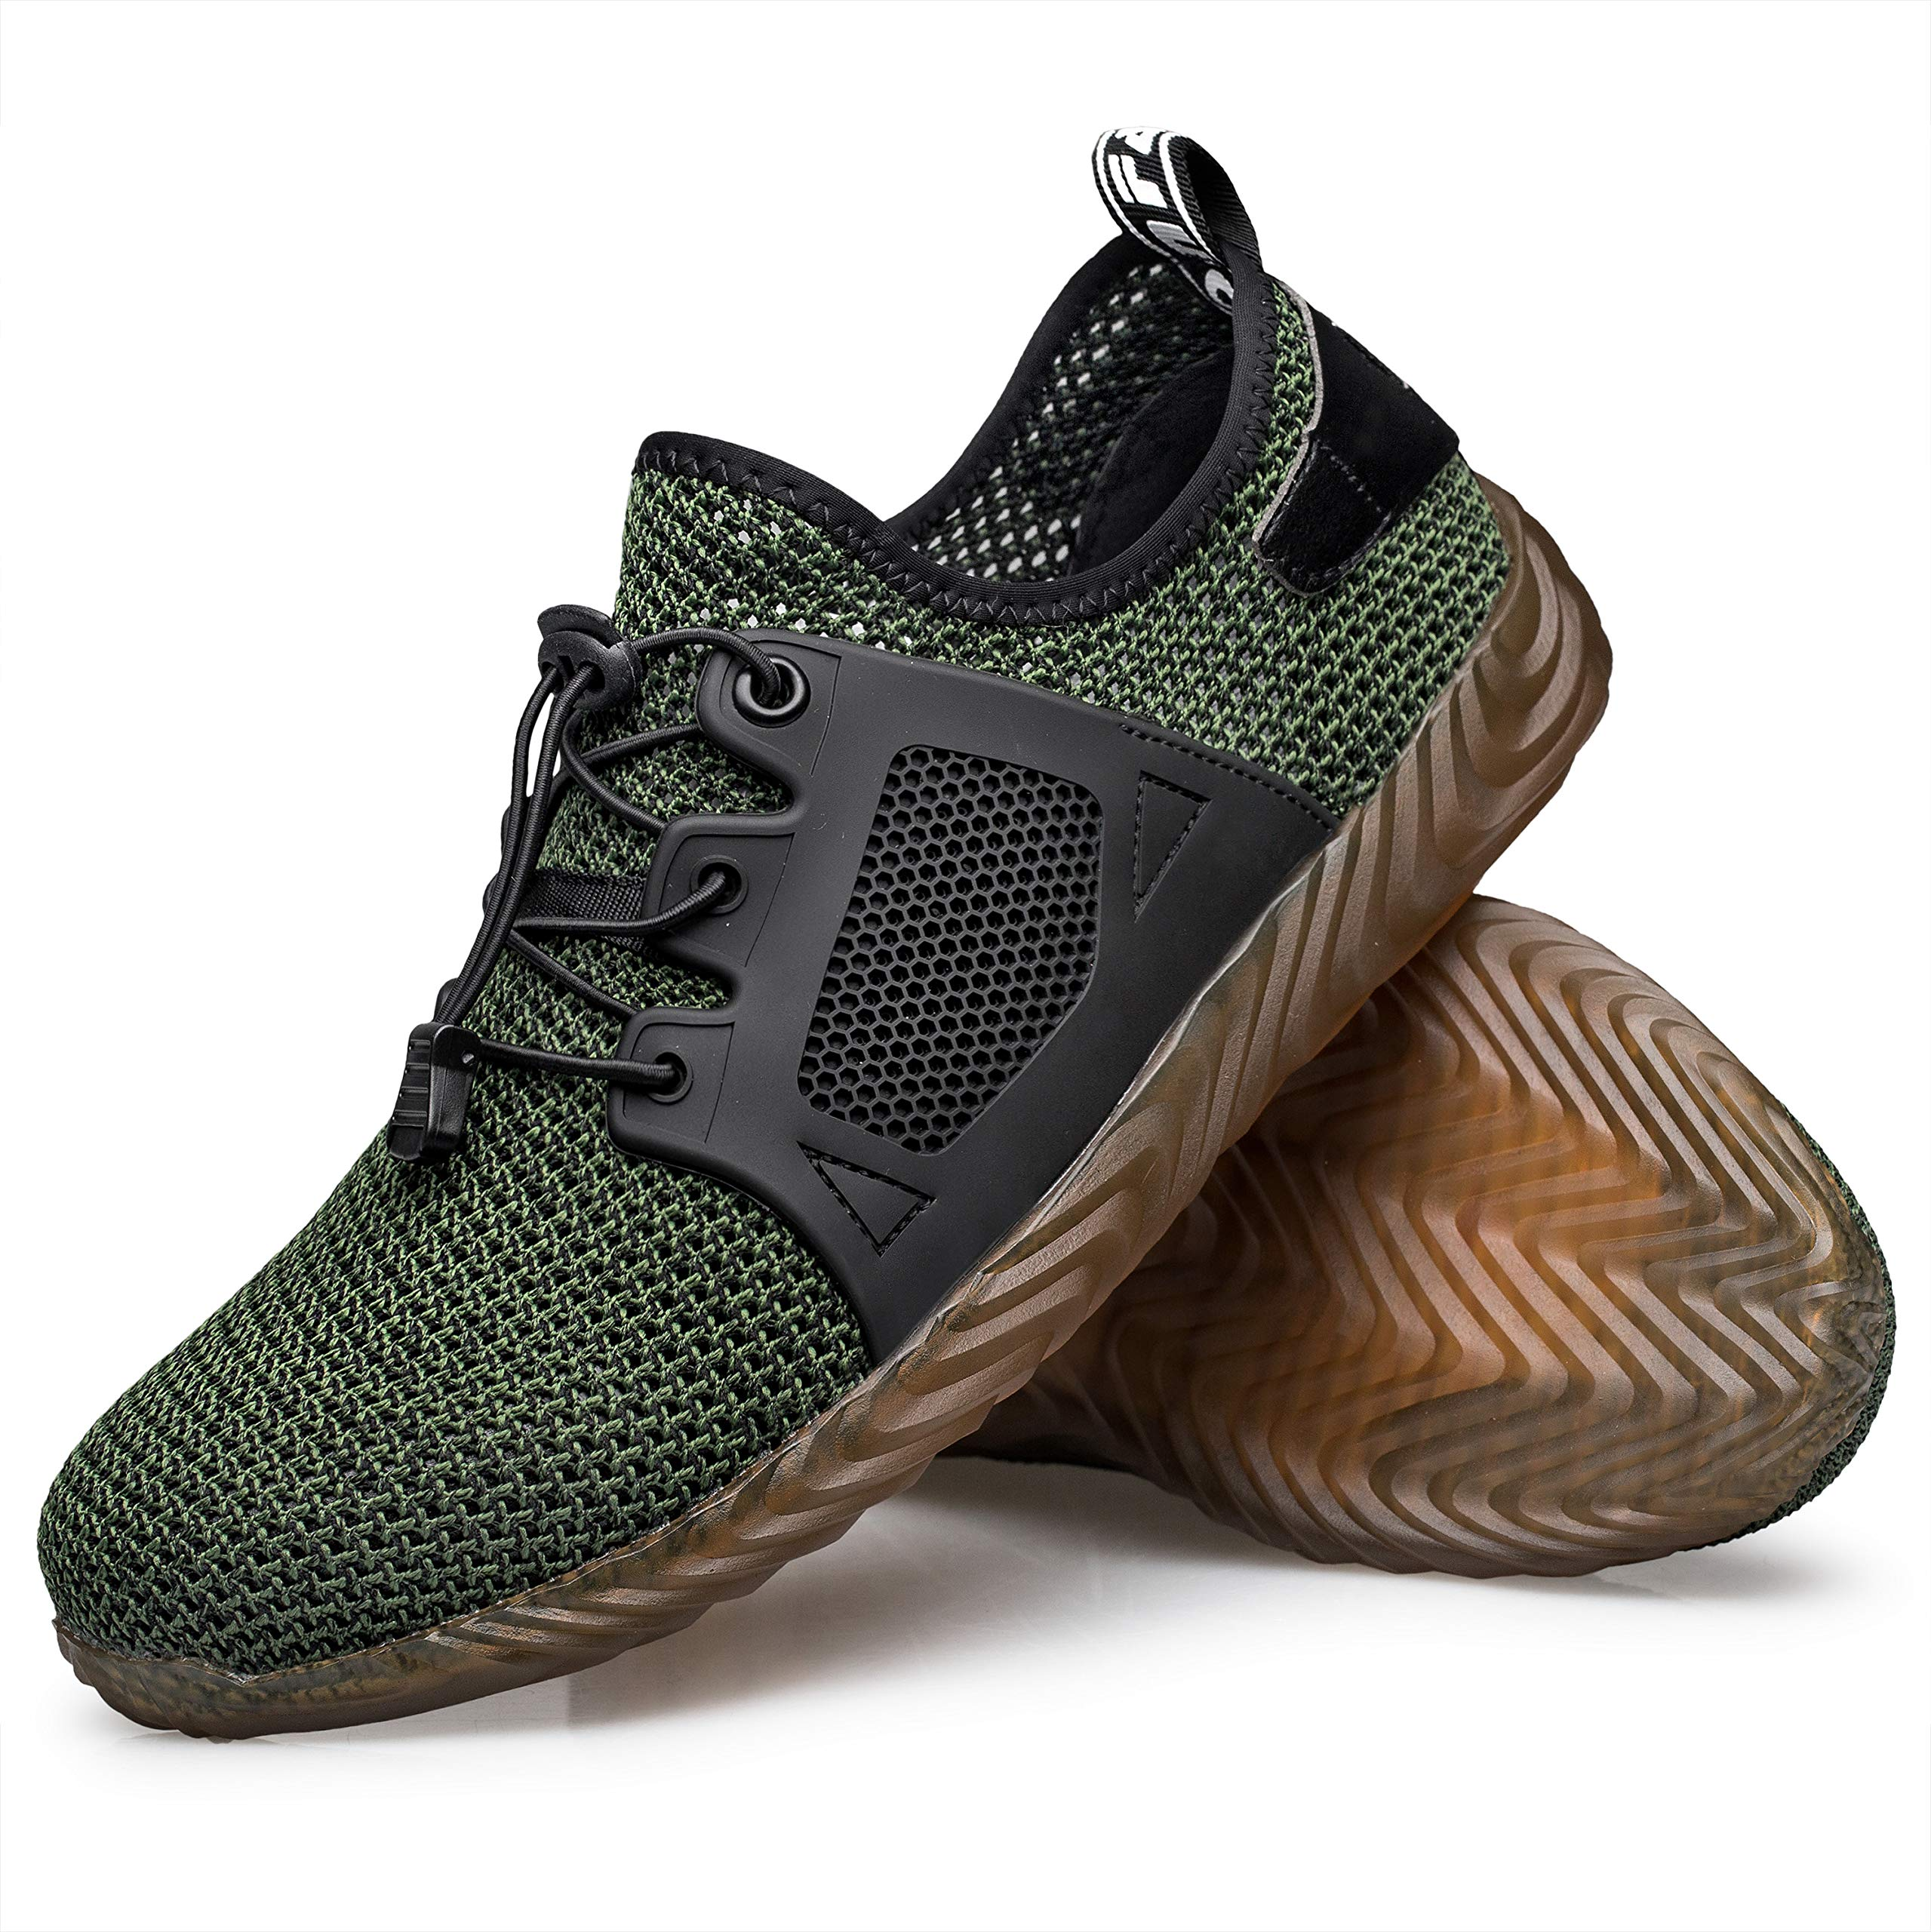 Winemuwang Steel Toe Shoes Mens Safety Work Industrial Construction Breathable Sneakers Lightweight Non Slip Outdoor Shoes, Green-breathable